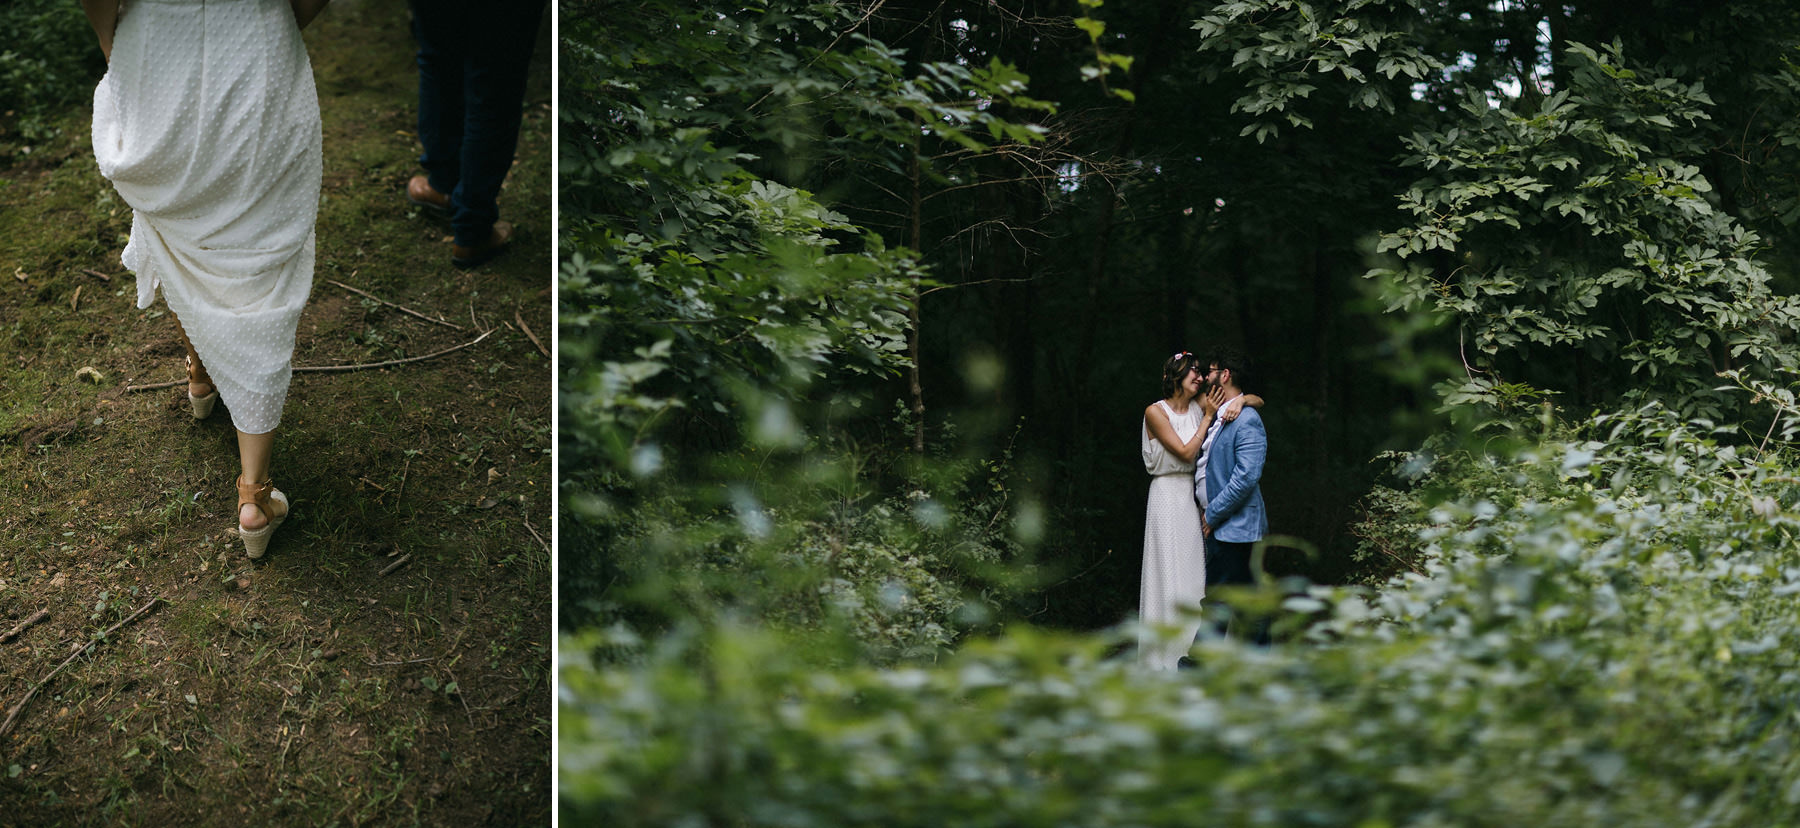 275_Blackberry Creek Outdoor Ozarks Wedding Springfield, Missouri_Kindling Wedding Photography.JPG